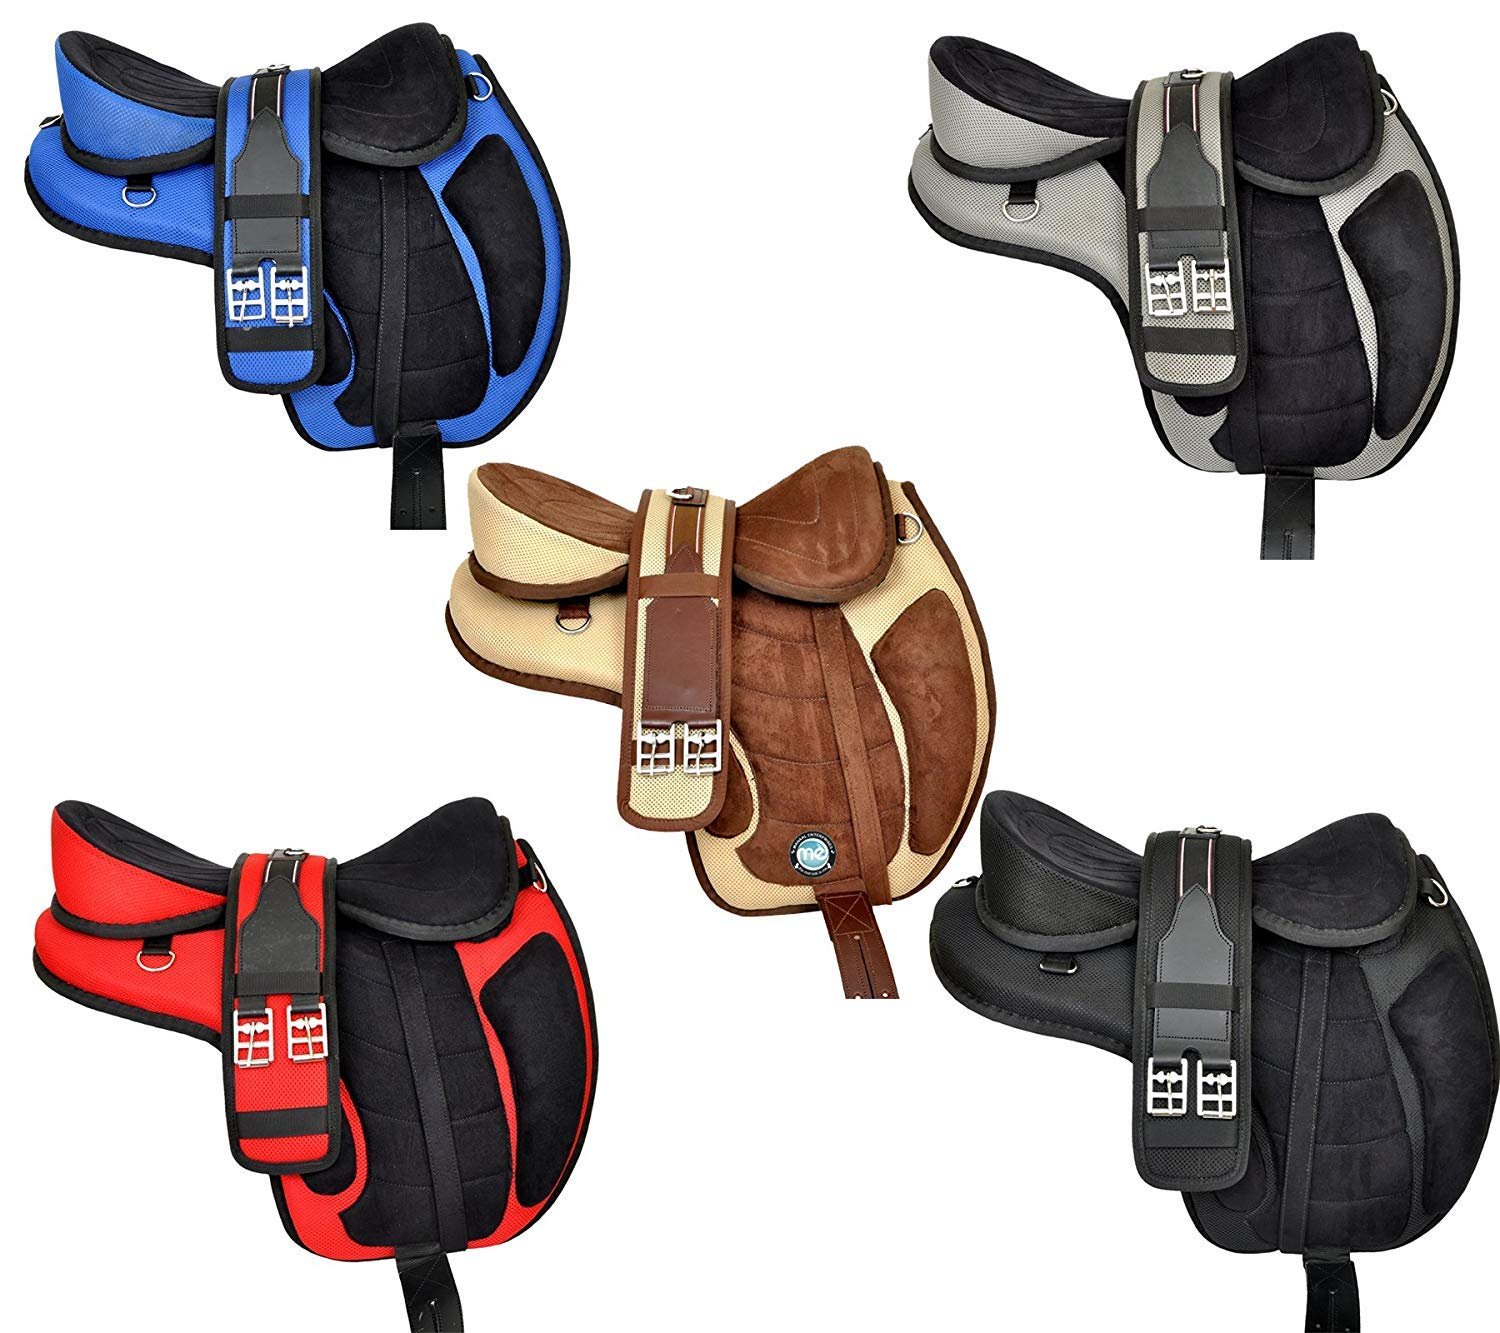 Manaal Enterprises Multicolored Synthetic Treeless FREEMAX English Horse Saddles Tack, Get Matching Girth, Leather Straps, Size 14' to 18' Inches Seat Available (16' Inches Seat, Black)